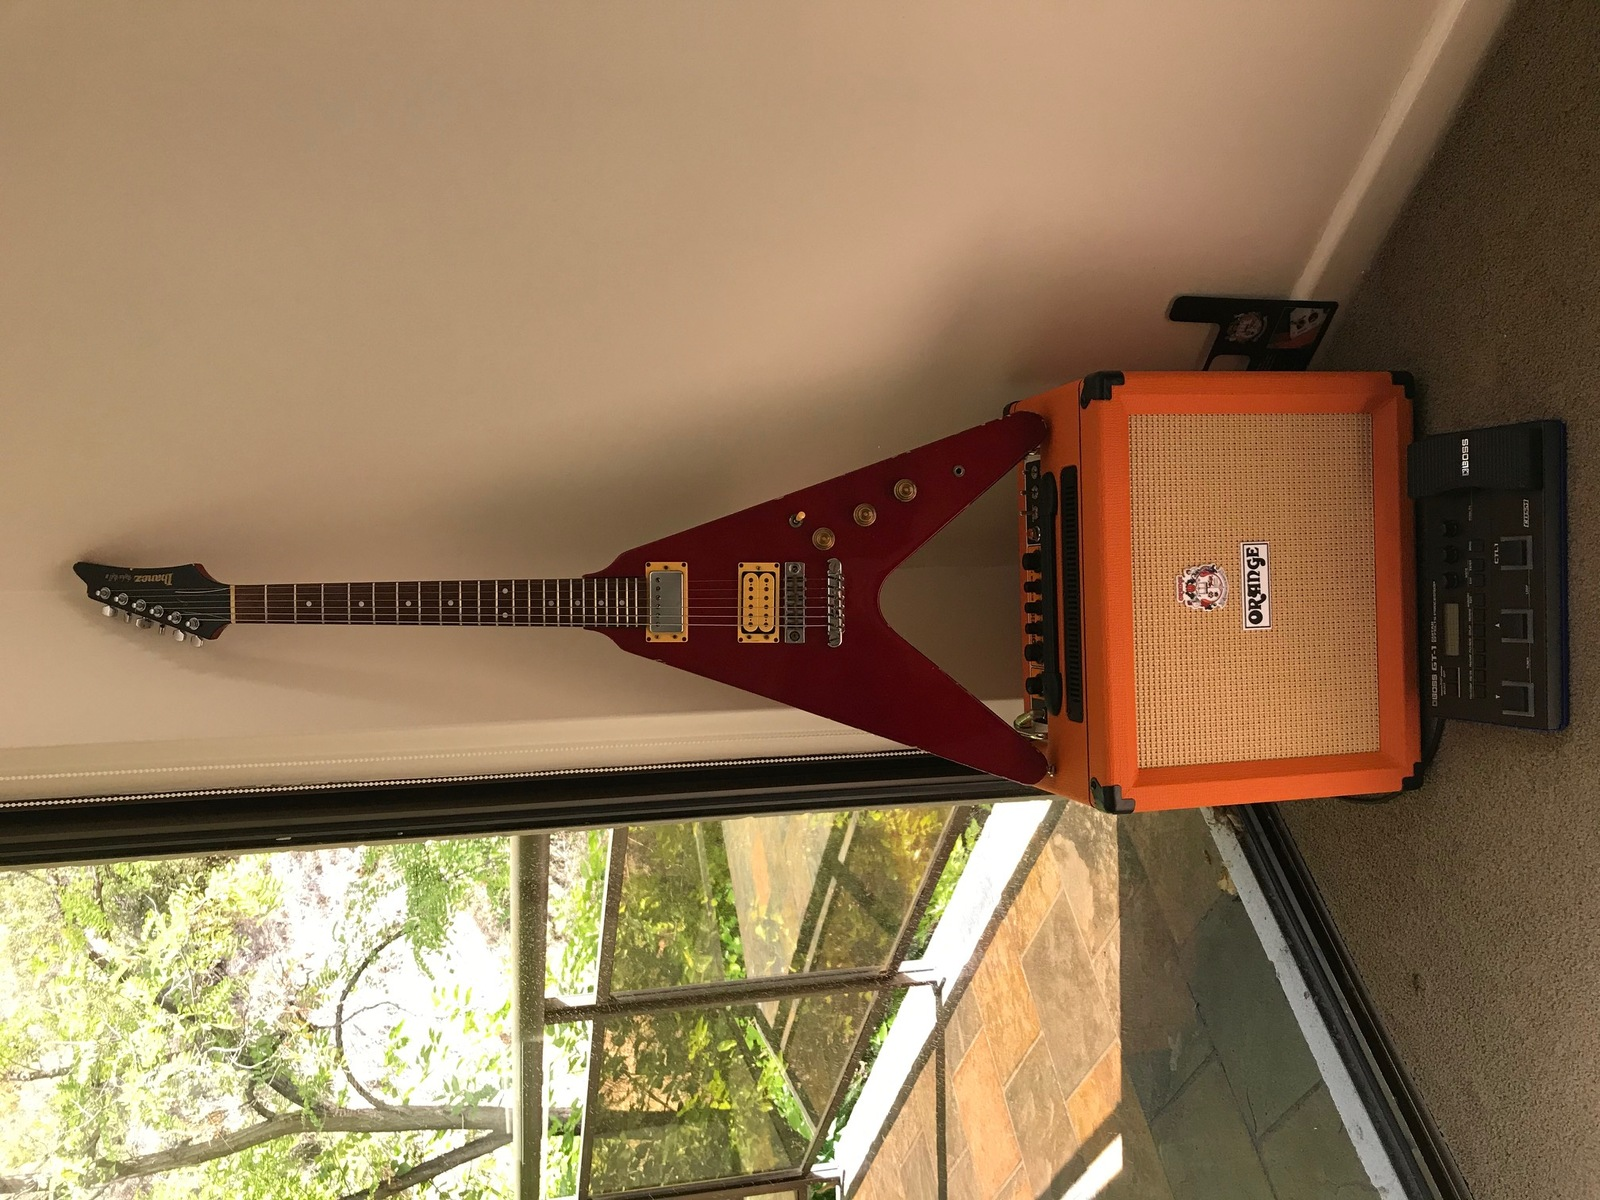 chromaticism's music gear photo containing BOSS GT-1 Guitar Effects Processor, Orange Rocker 15, and Ibanez Rocket Roll II RR50FR